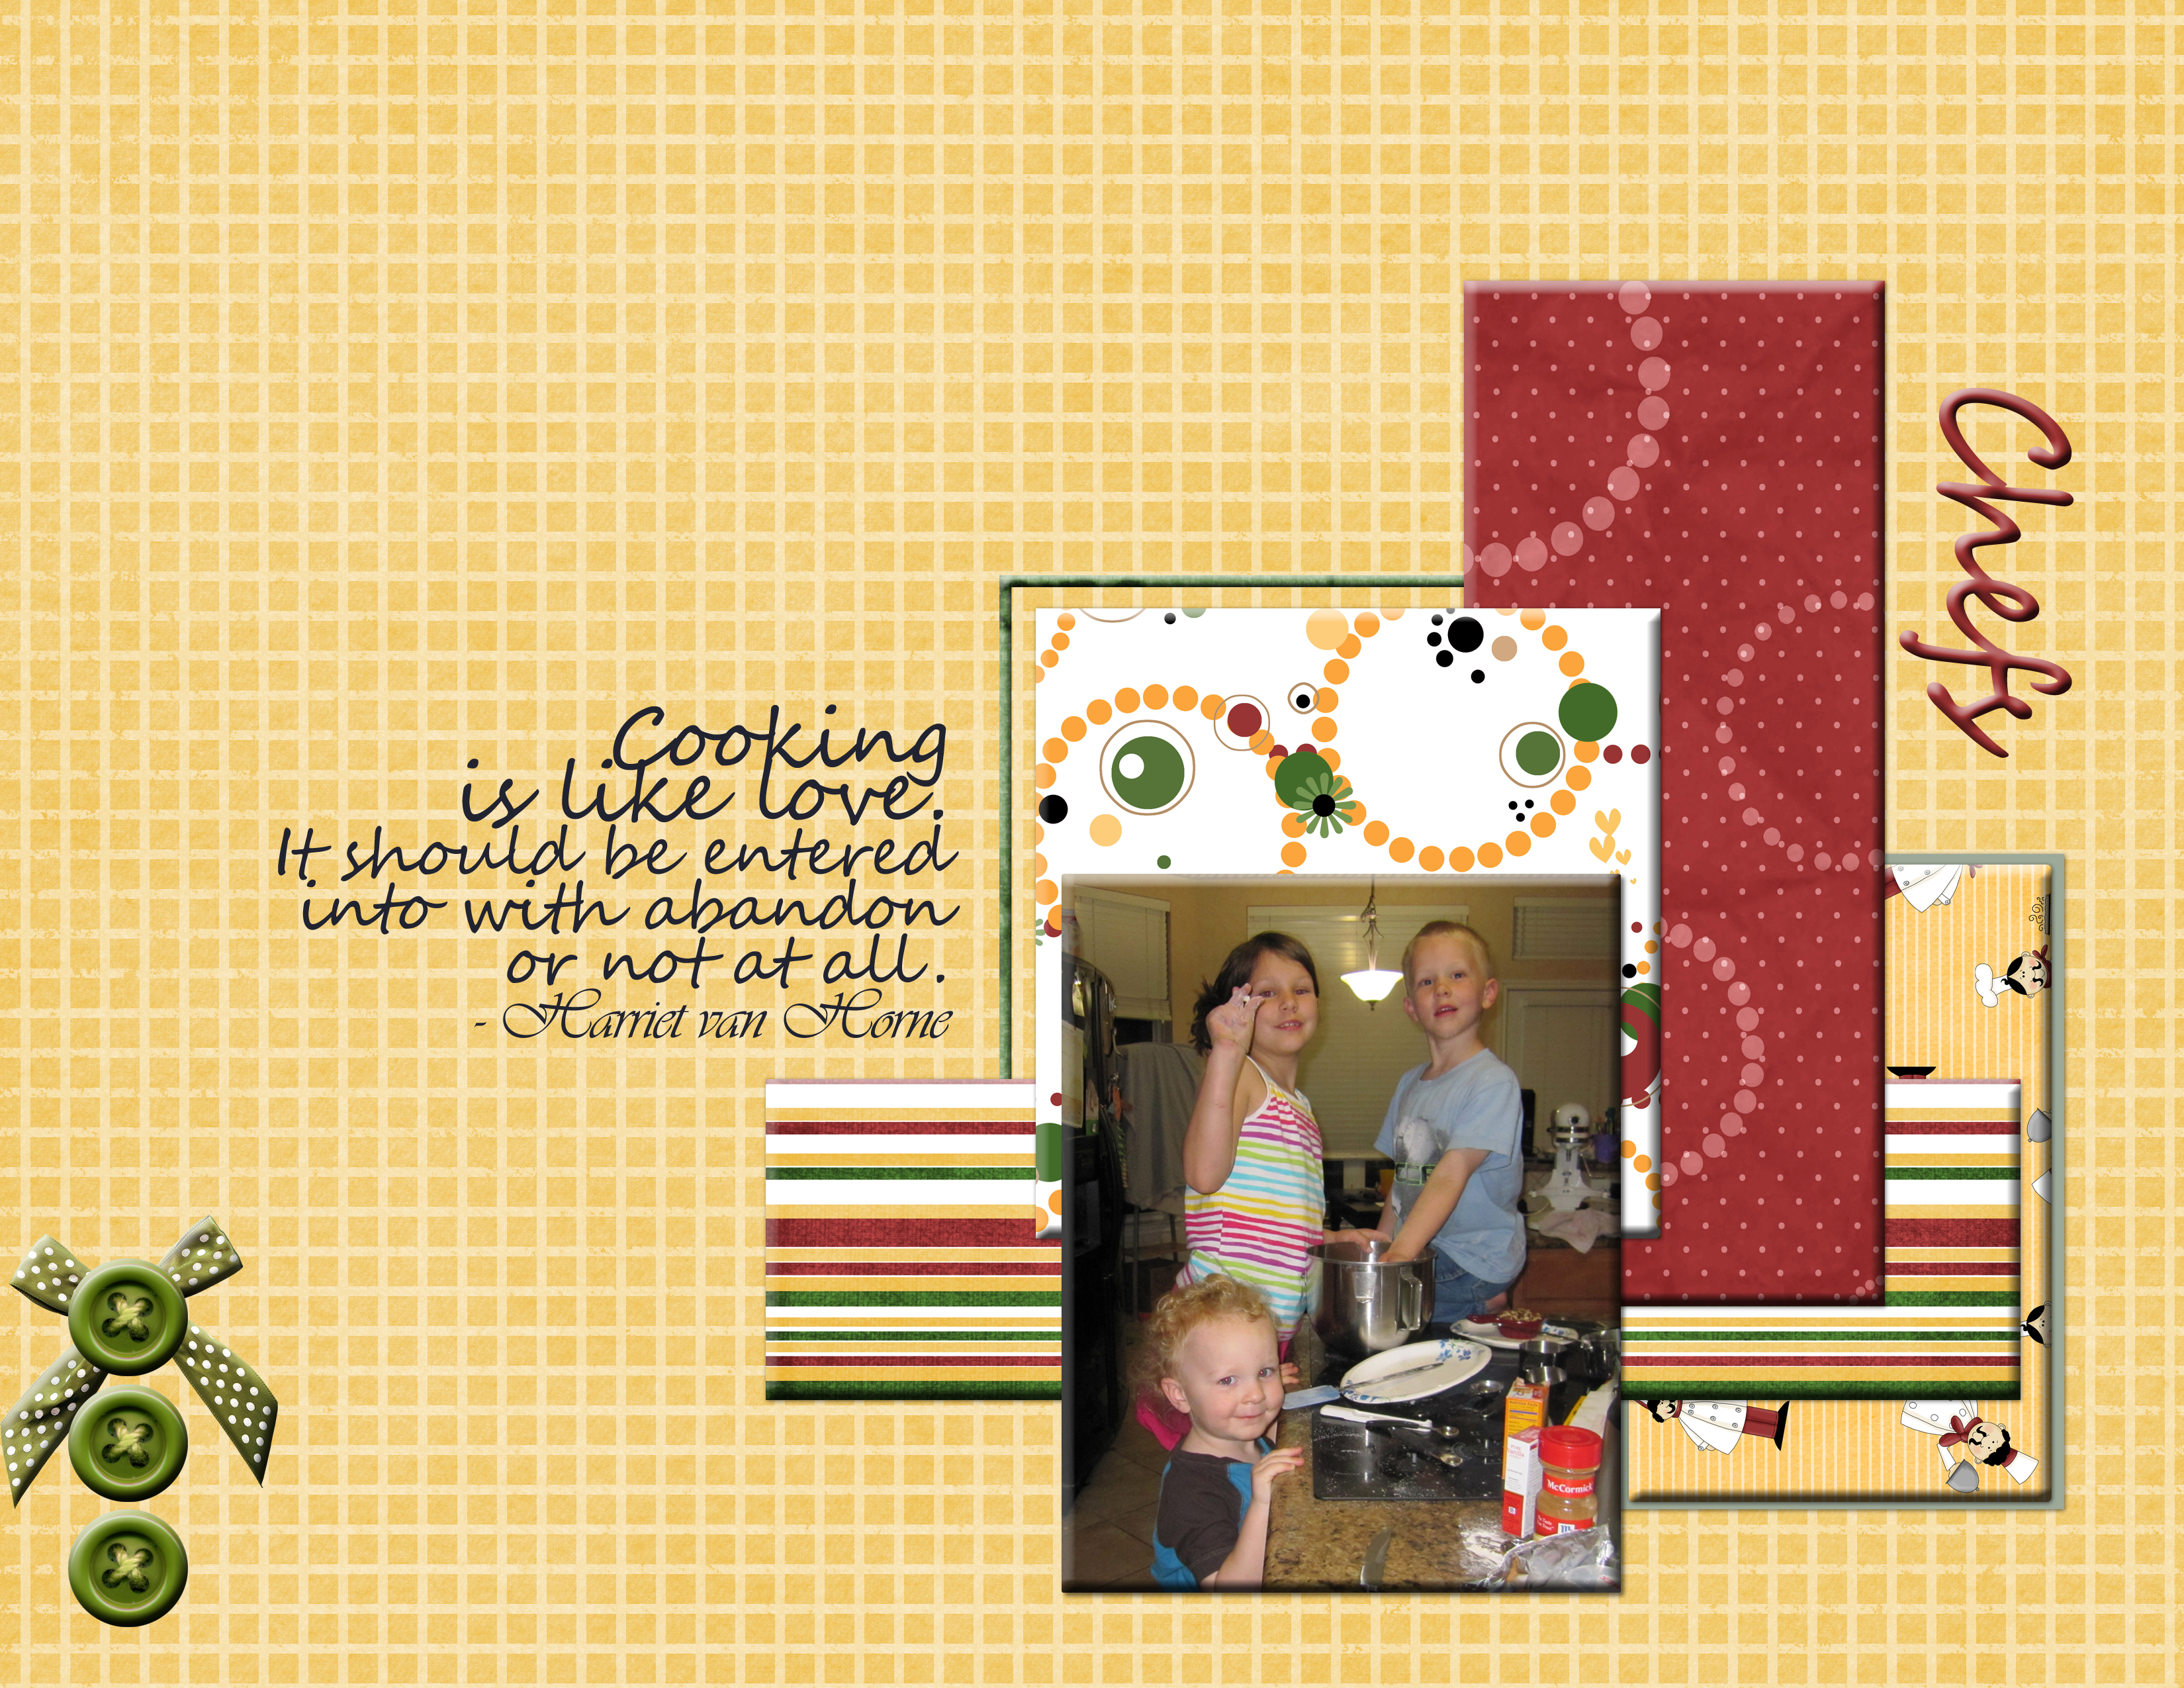 Digital scrapbooking kits free all about scrapbooking ideas - Digital Scrapbooks Images Craft Design Ideas Digital Scrapbooks Images Craft Design Ideas Digital Scrapbooking Crafthubs Free